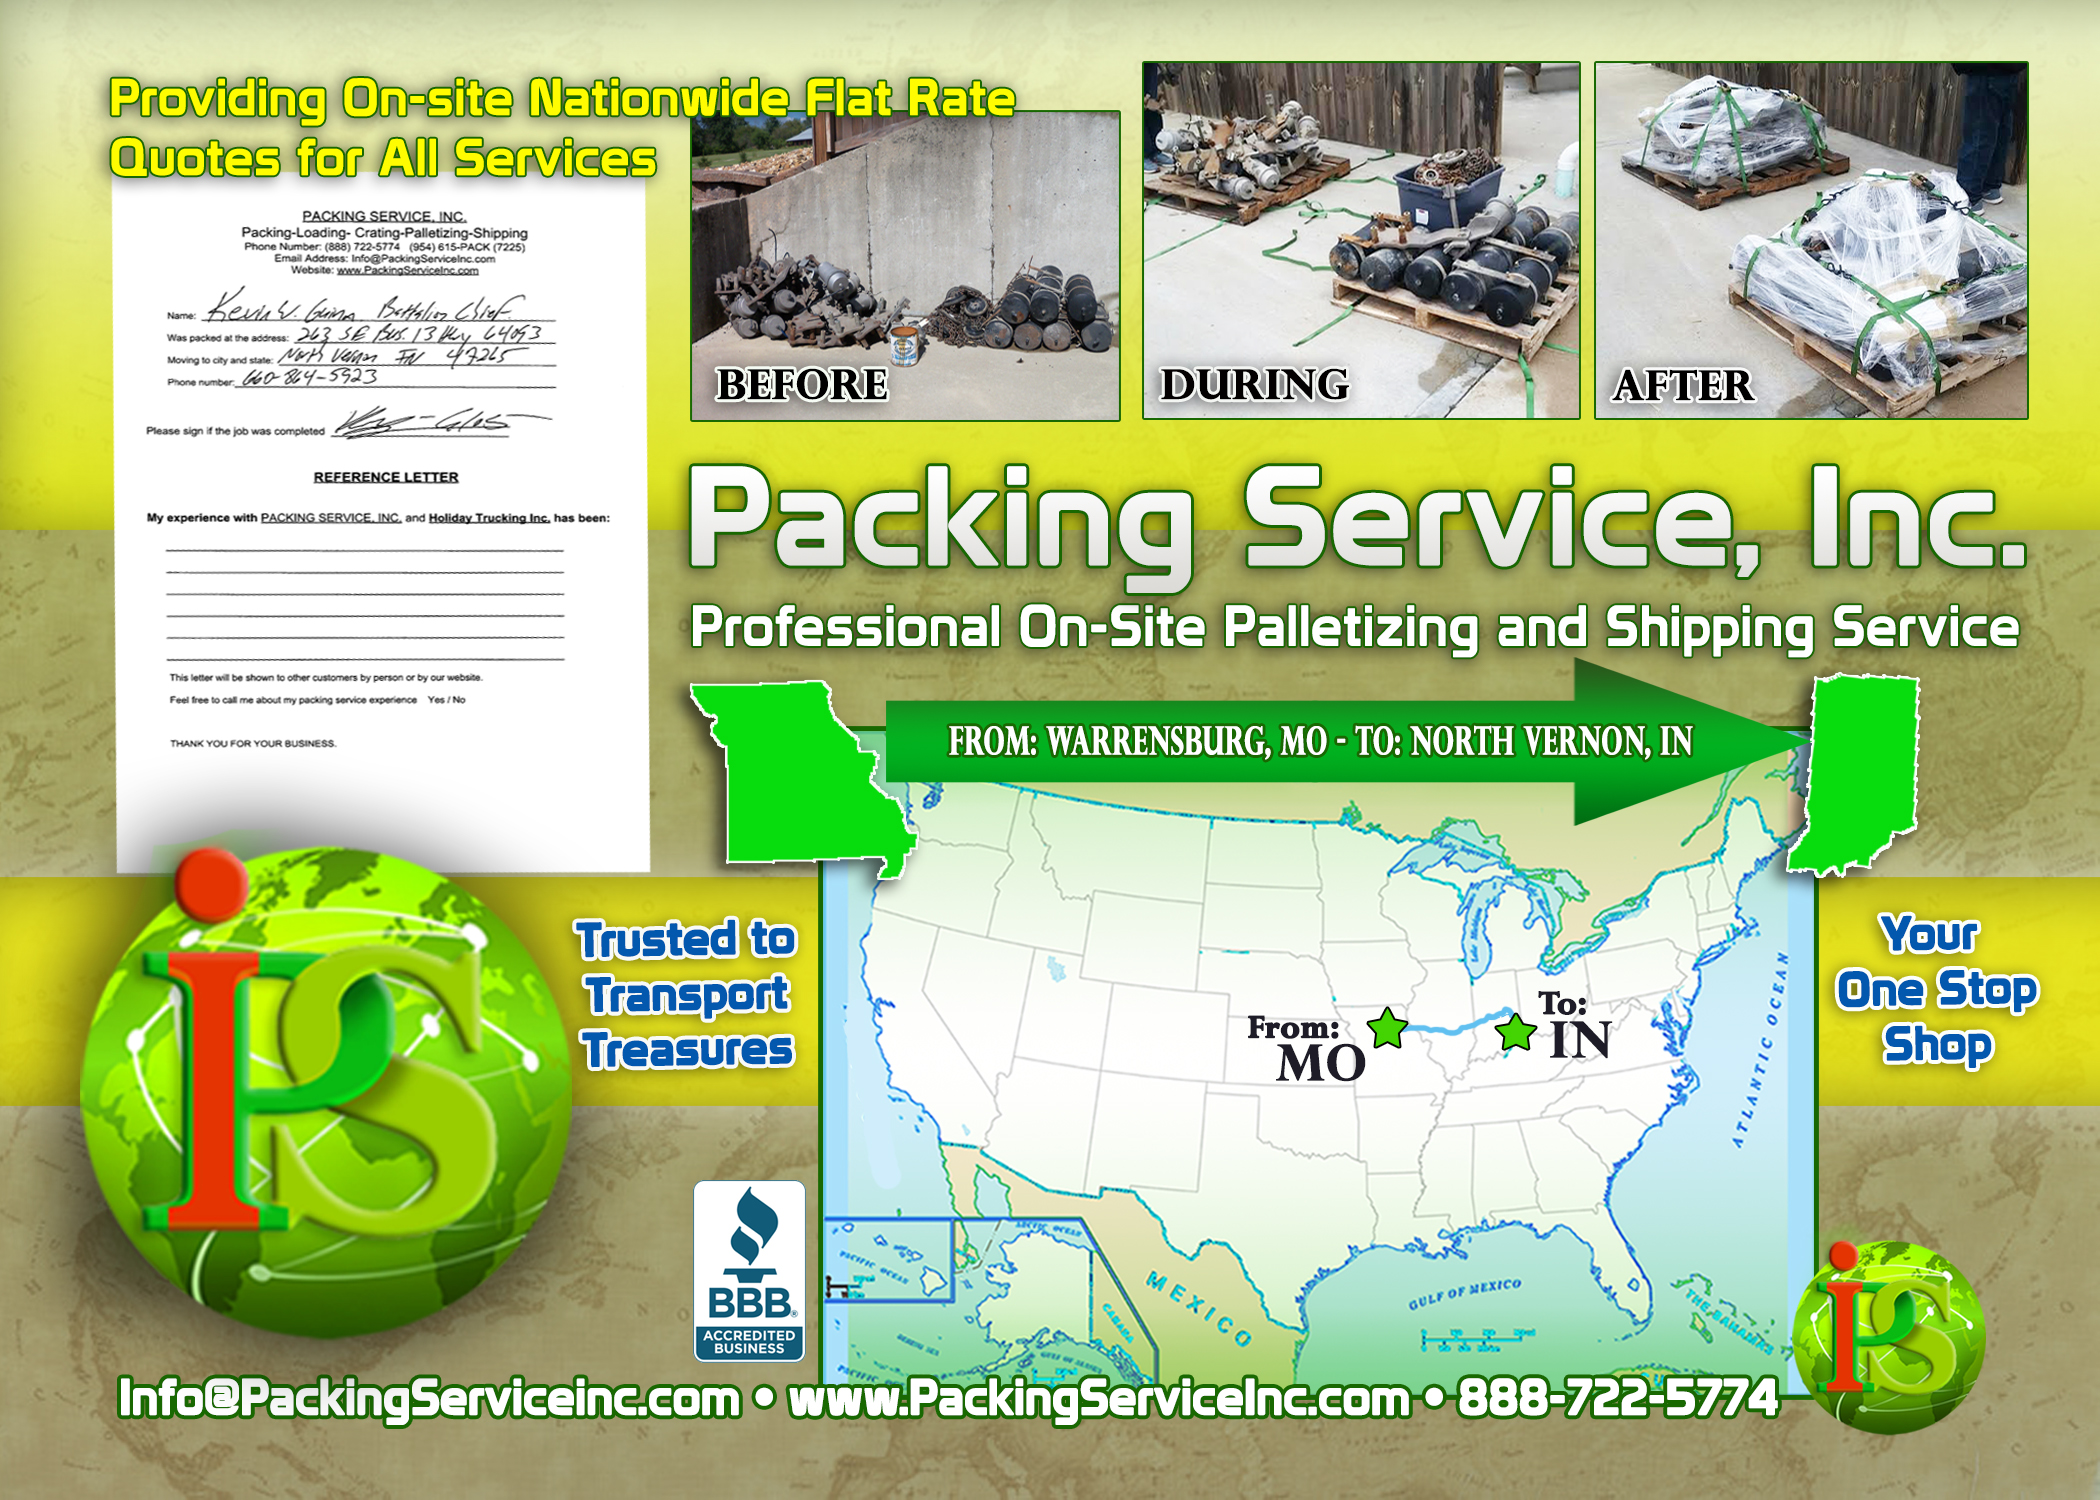 Palletizing Machinery parts and Shipping Services MO-IN by Packing Service, Inc. - 278